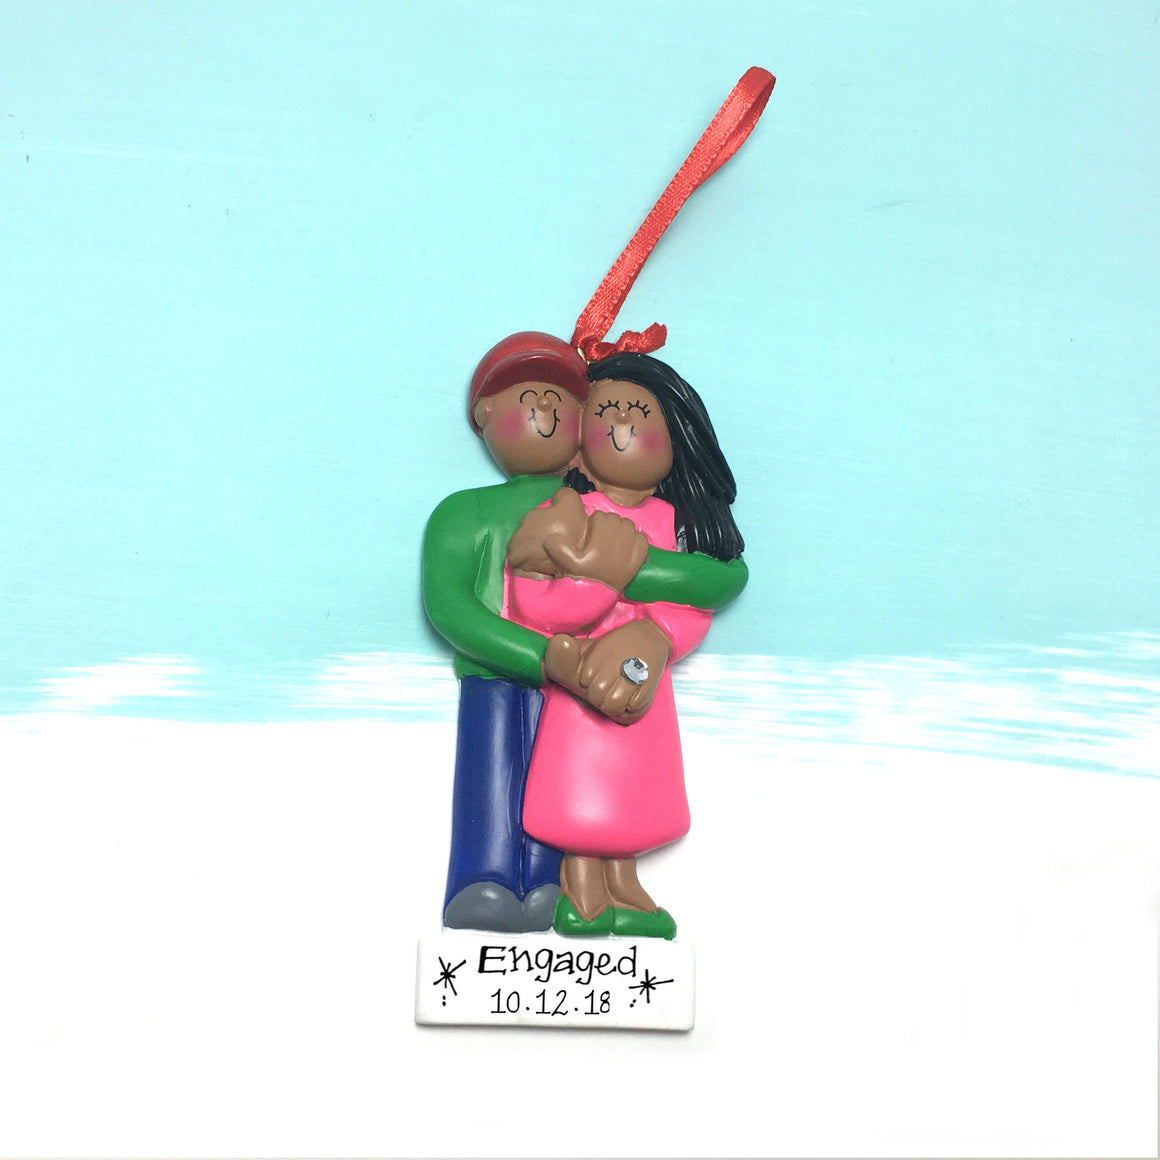 Just Engaged Couple Personalized Christmas Ornament / Brown Couple Proposal Ornament / Engaged Couple / Our First Christmas / Engaged!